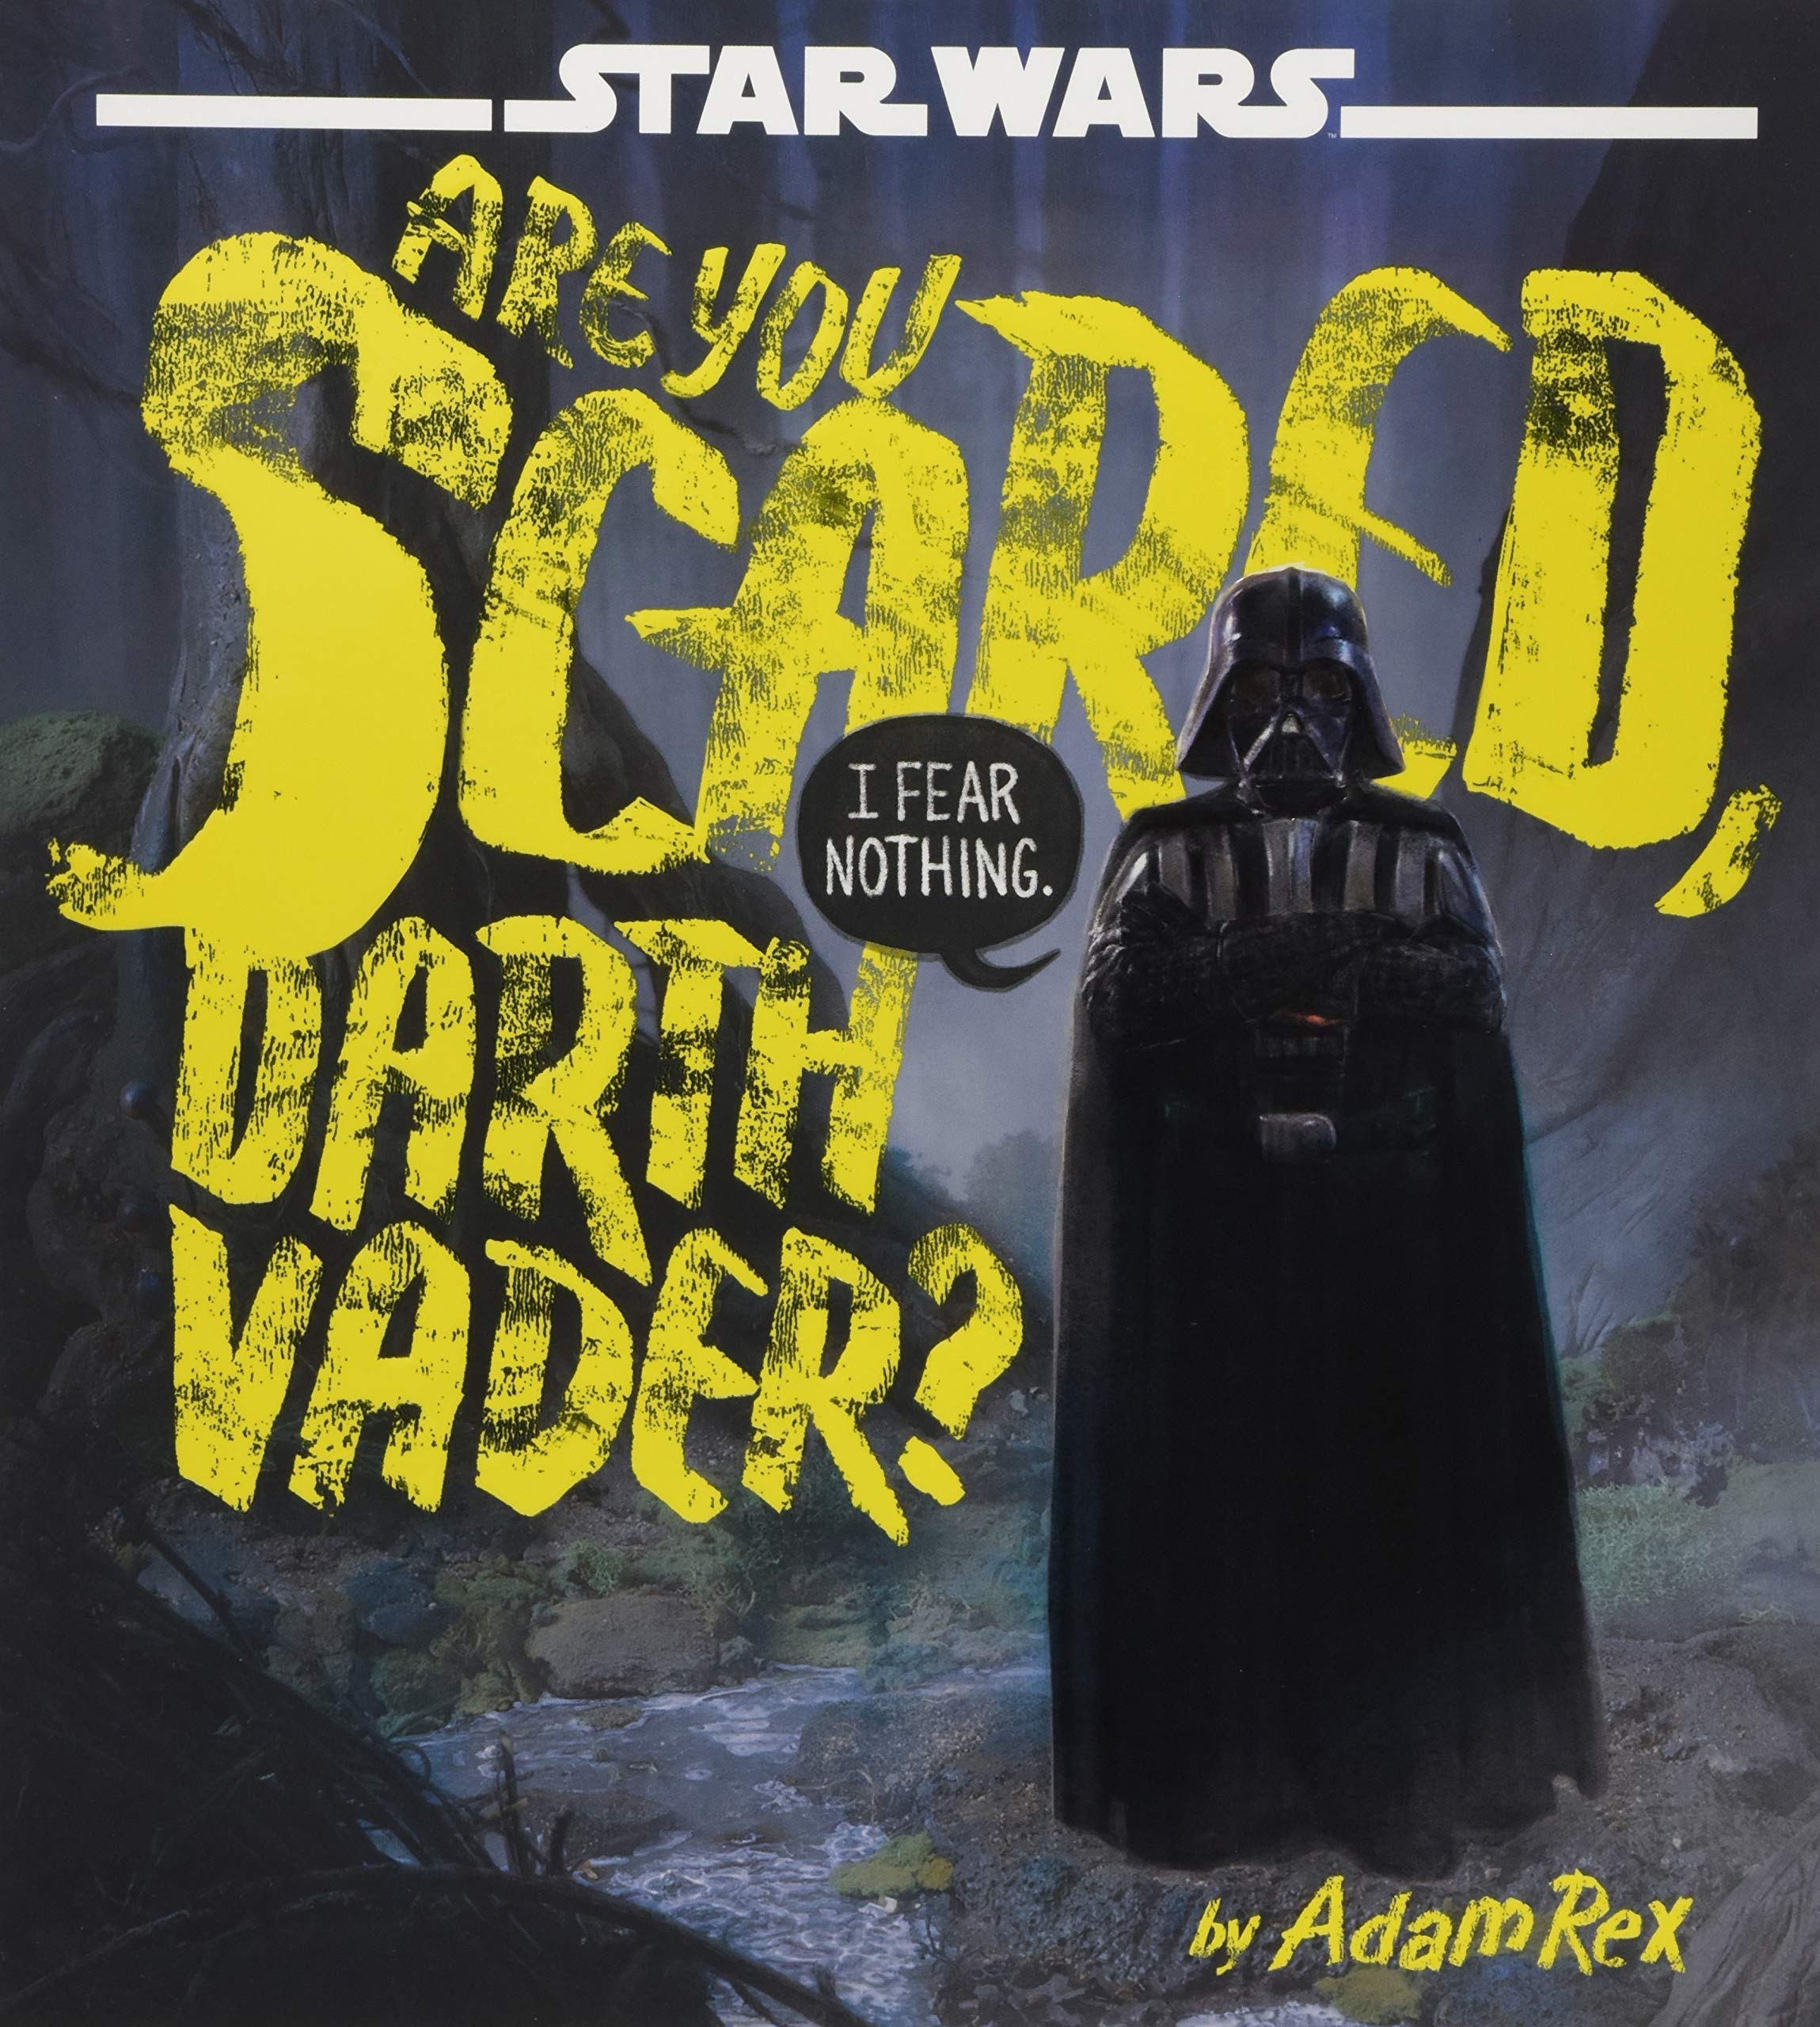 the best picture books of 2018 are you scared darth vader.jpg